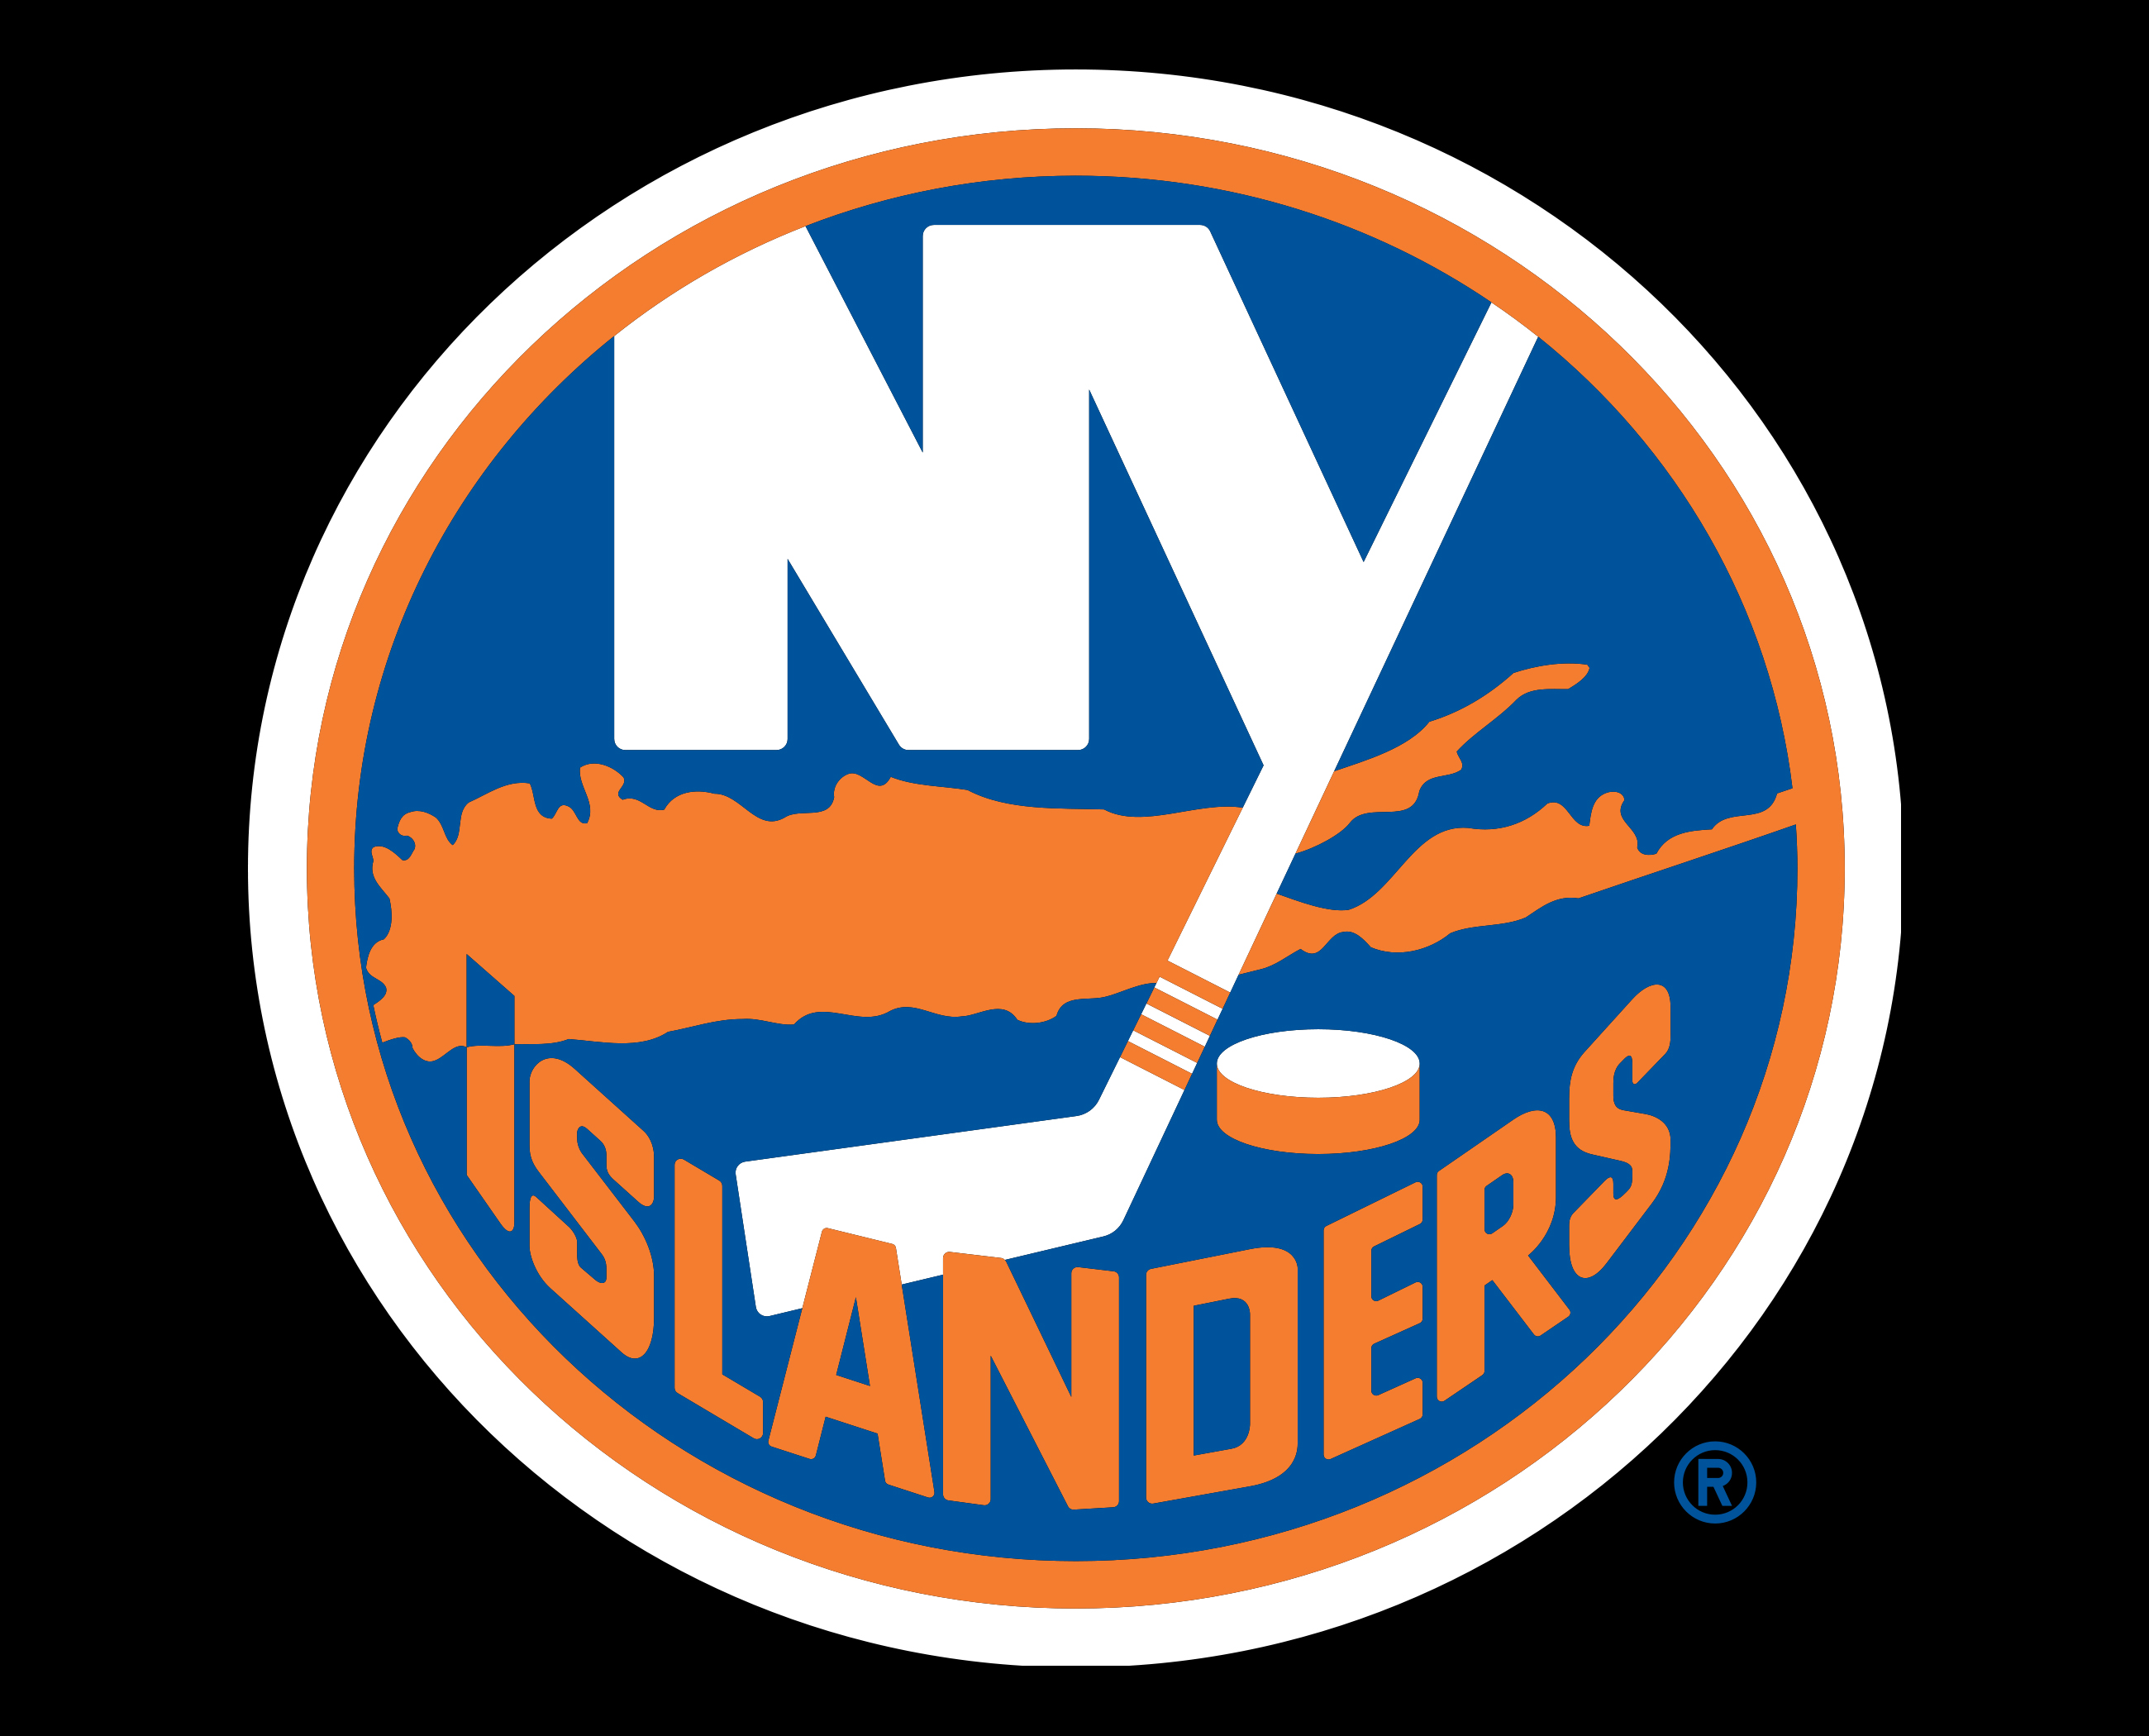 Meaning Islanders logo and symbol.